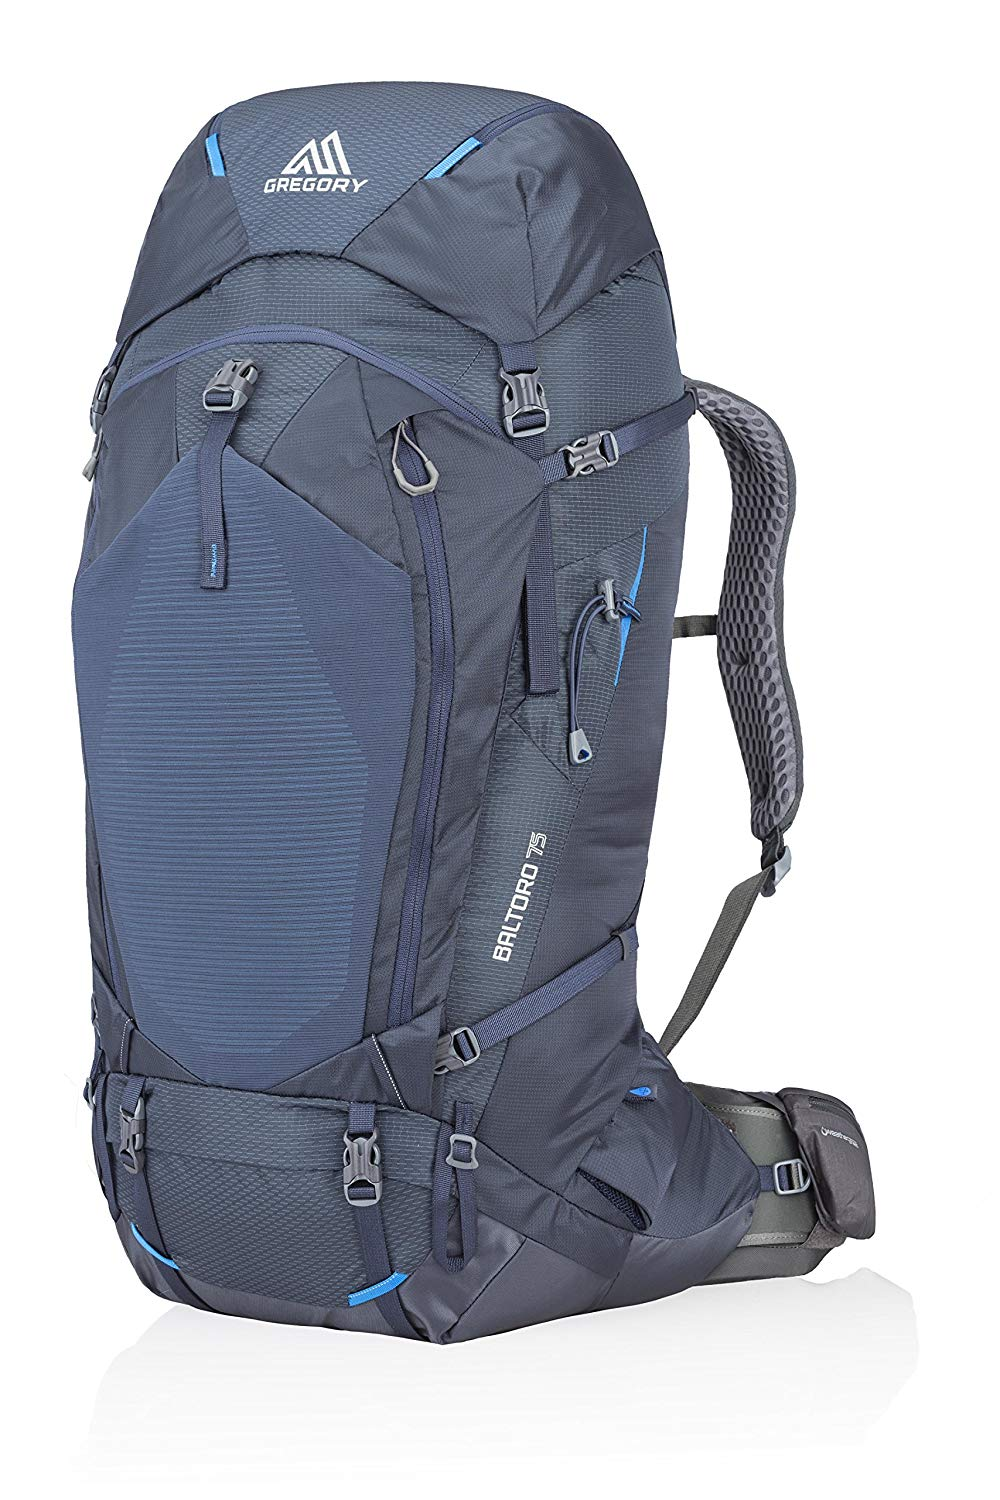 Best Internal Frame Backpack Top Choices For Your Next